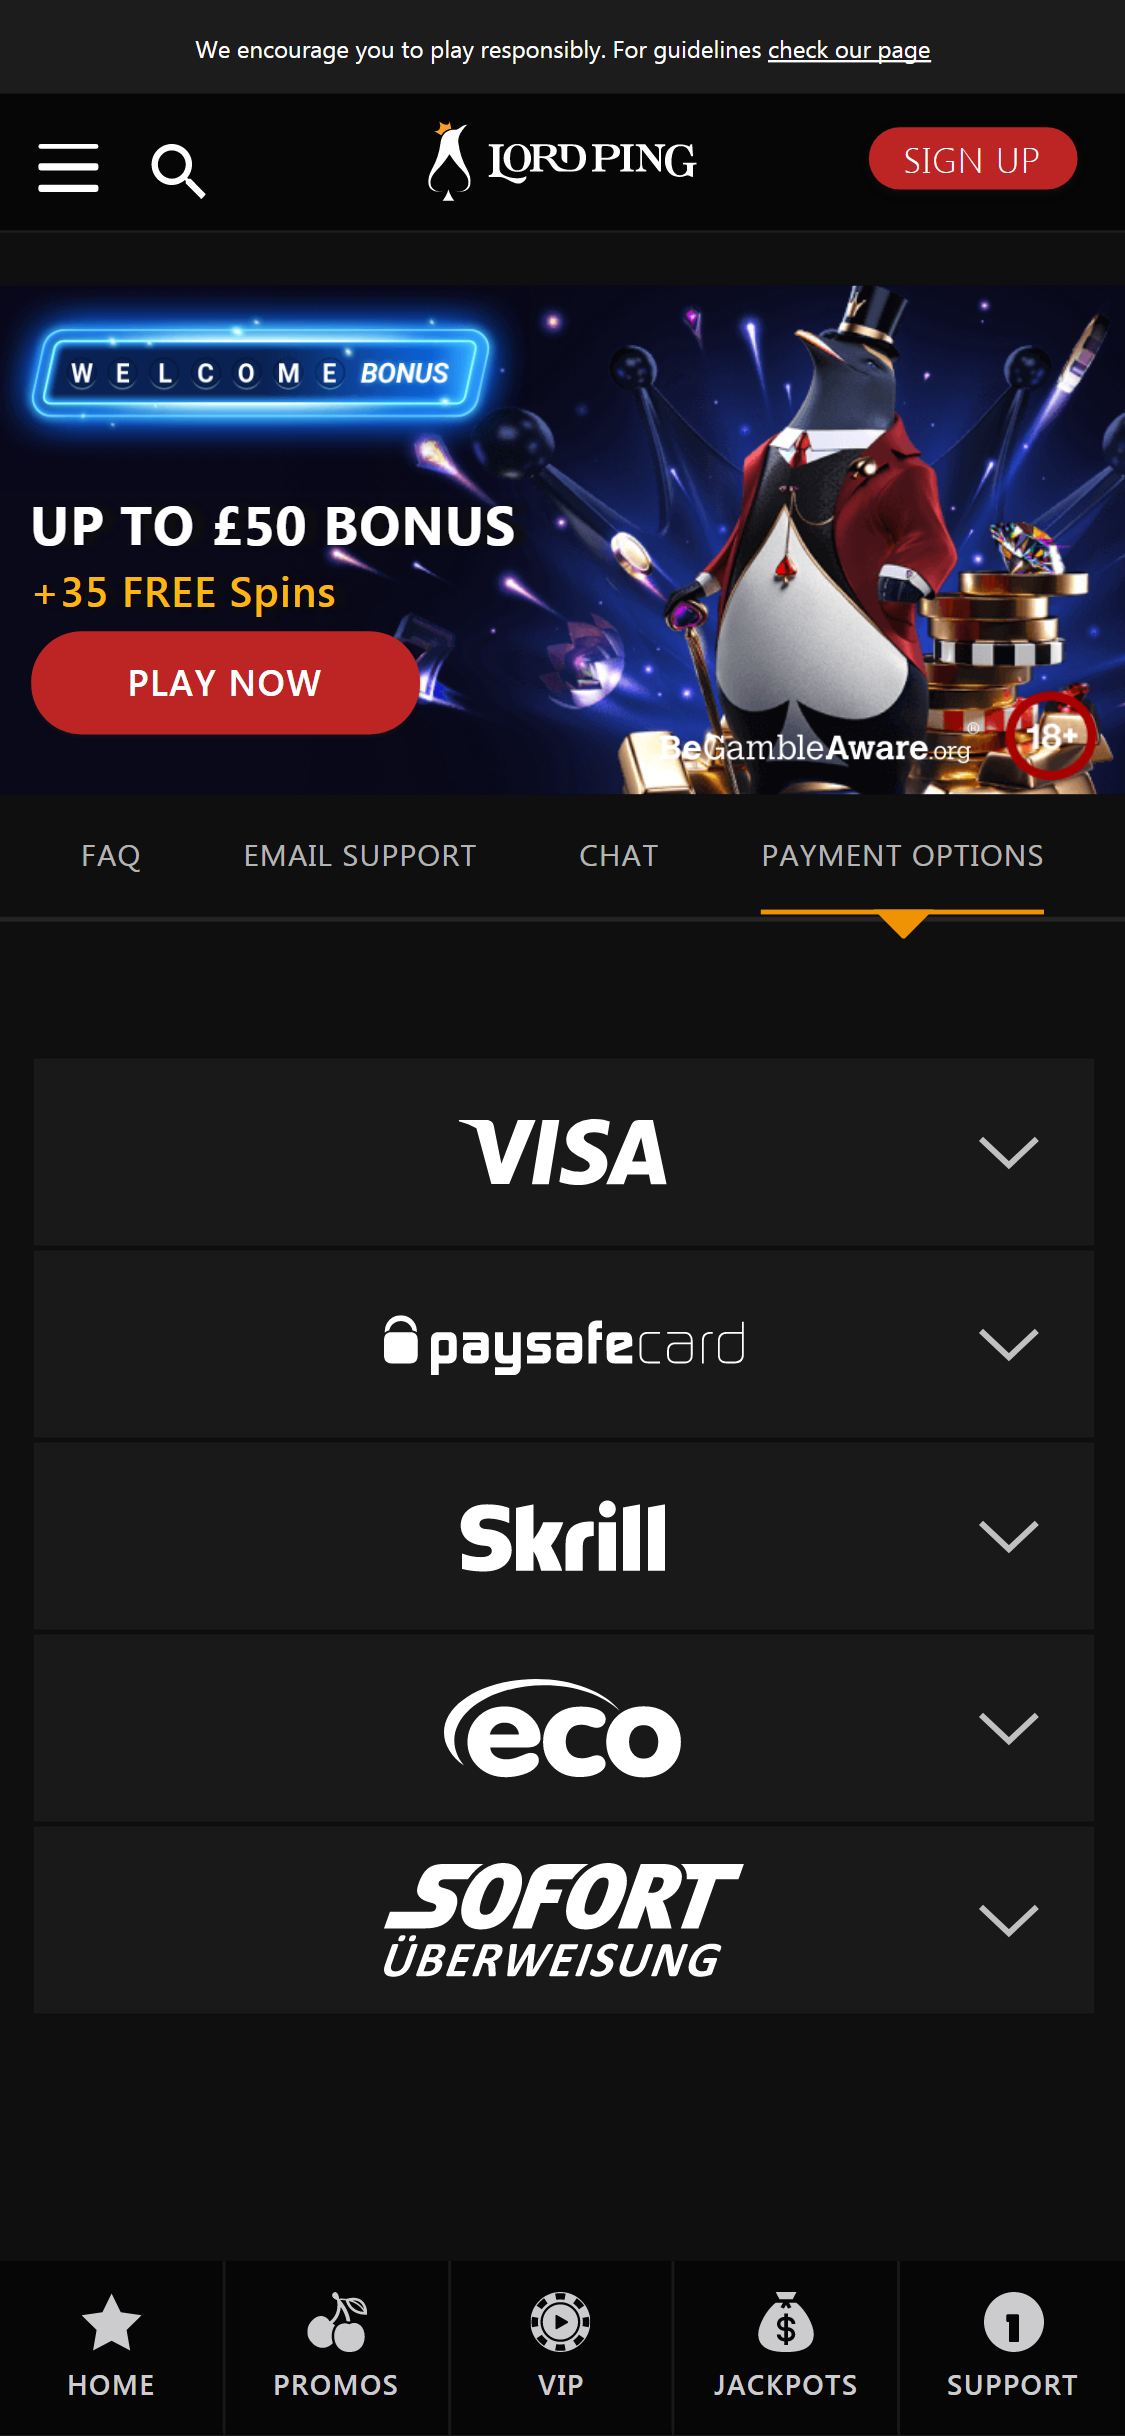 Lord Ping Casino Payment Methods